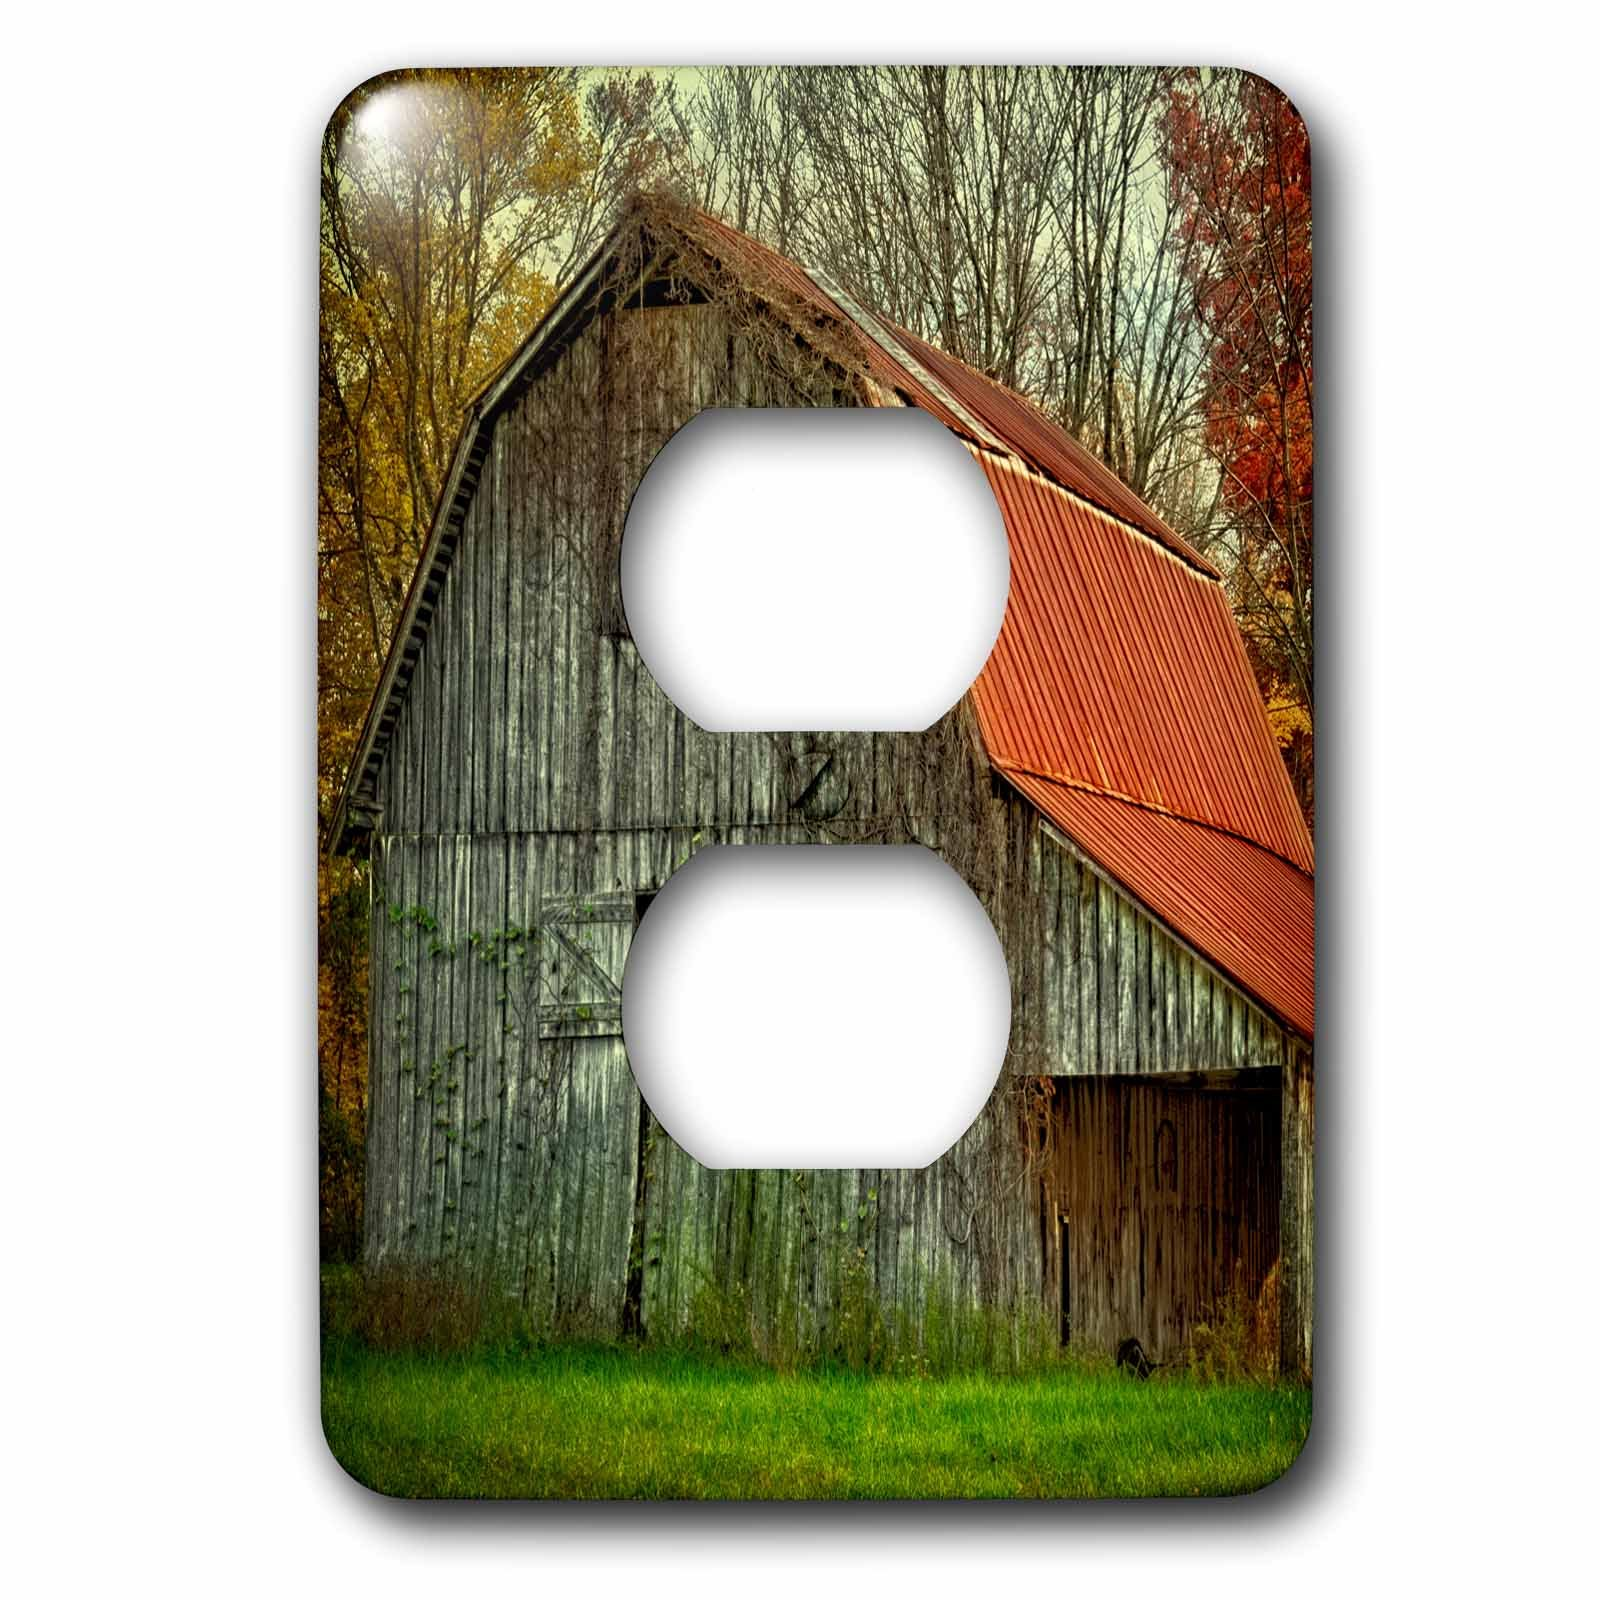 Danita Delimont - Rural - USA, Indiana. rural landscape, vine-covered barn with red roof - Light Switch Covers - 2 plug outlet cover (lsp_230816_6)